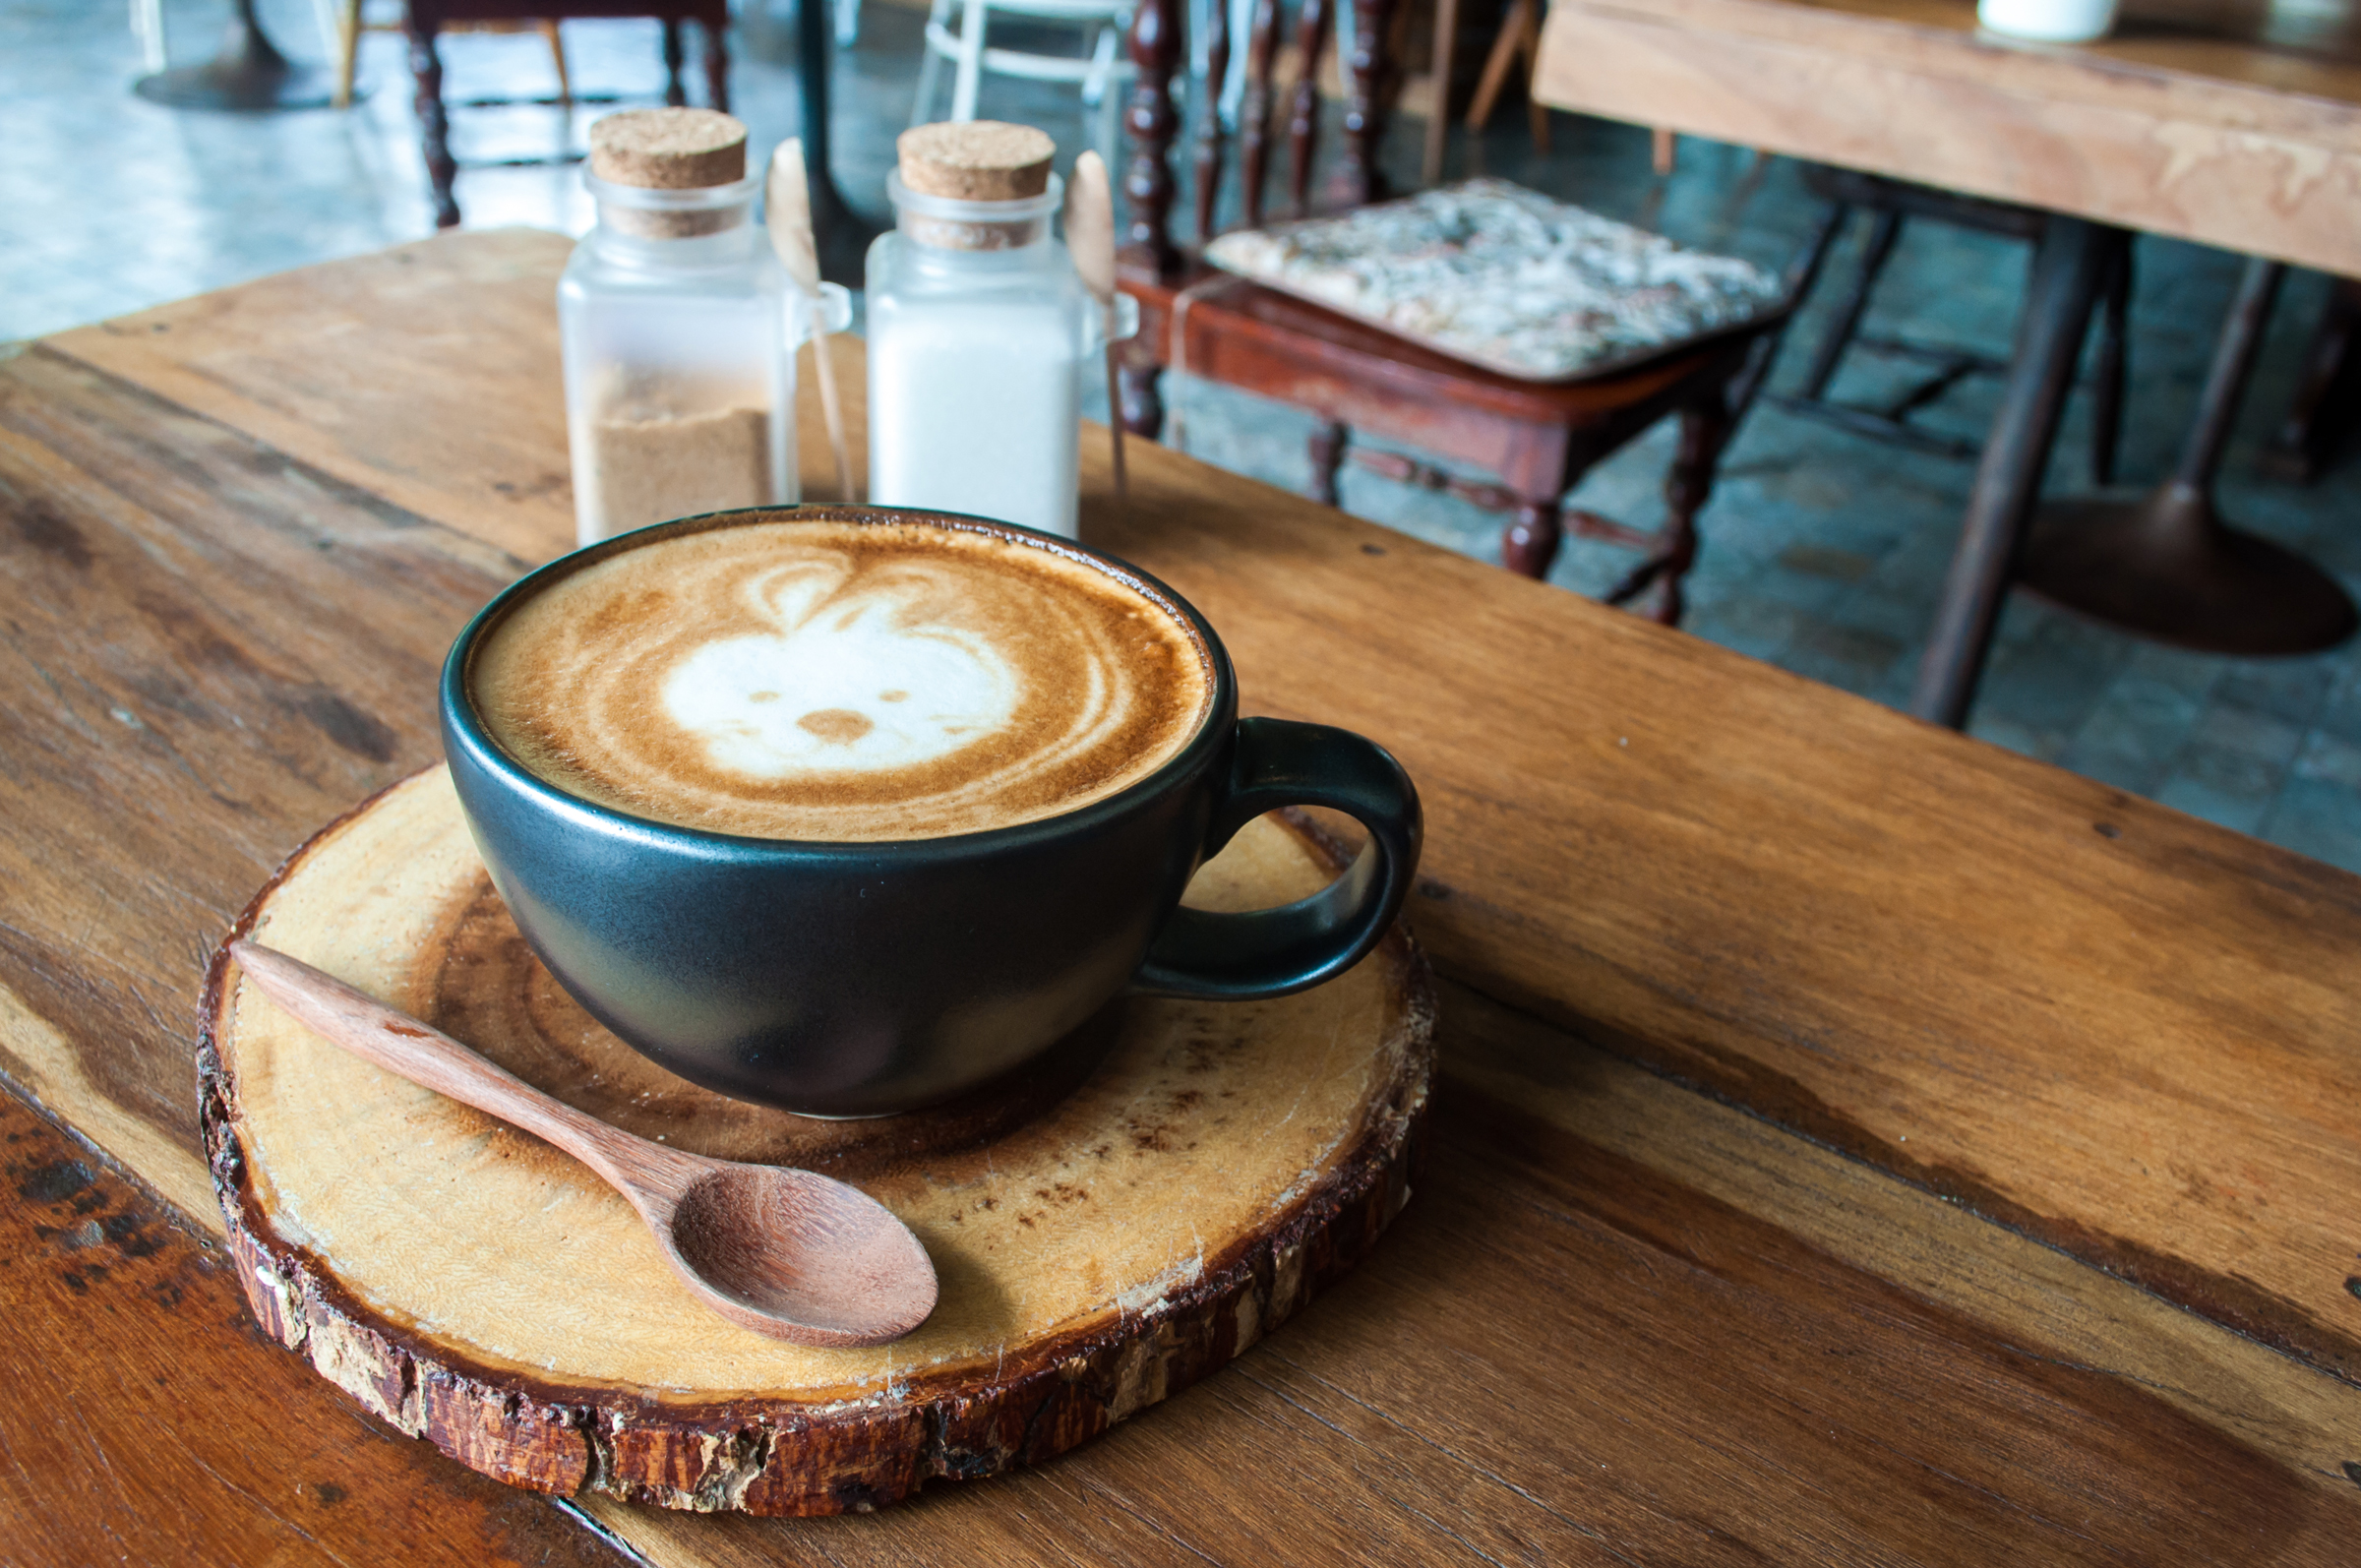 http://www.shutterstock.com/pic-293925089/stock-photo-cute-hot-latte-coffee-on-wooden-saucer-in-cafe.html?src=pd-photo-331406096-BI0mHmZ8YeBzYVmIsgSdLg-4